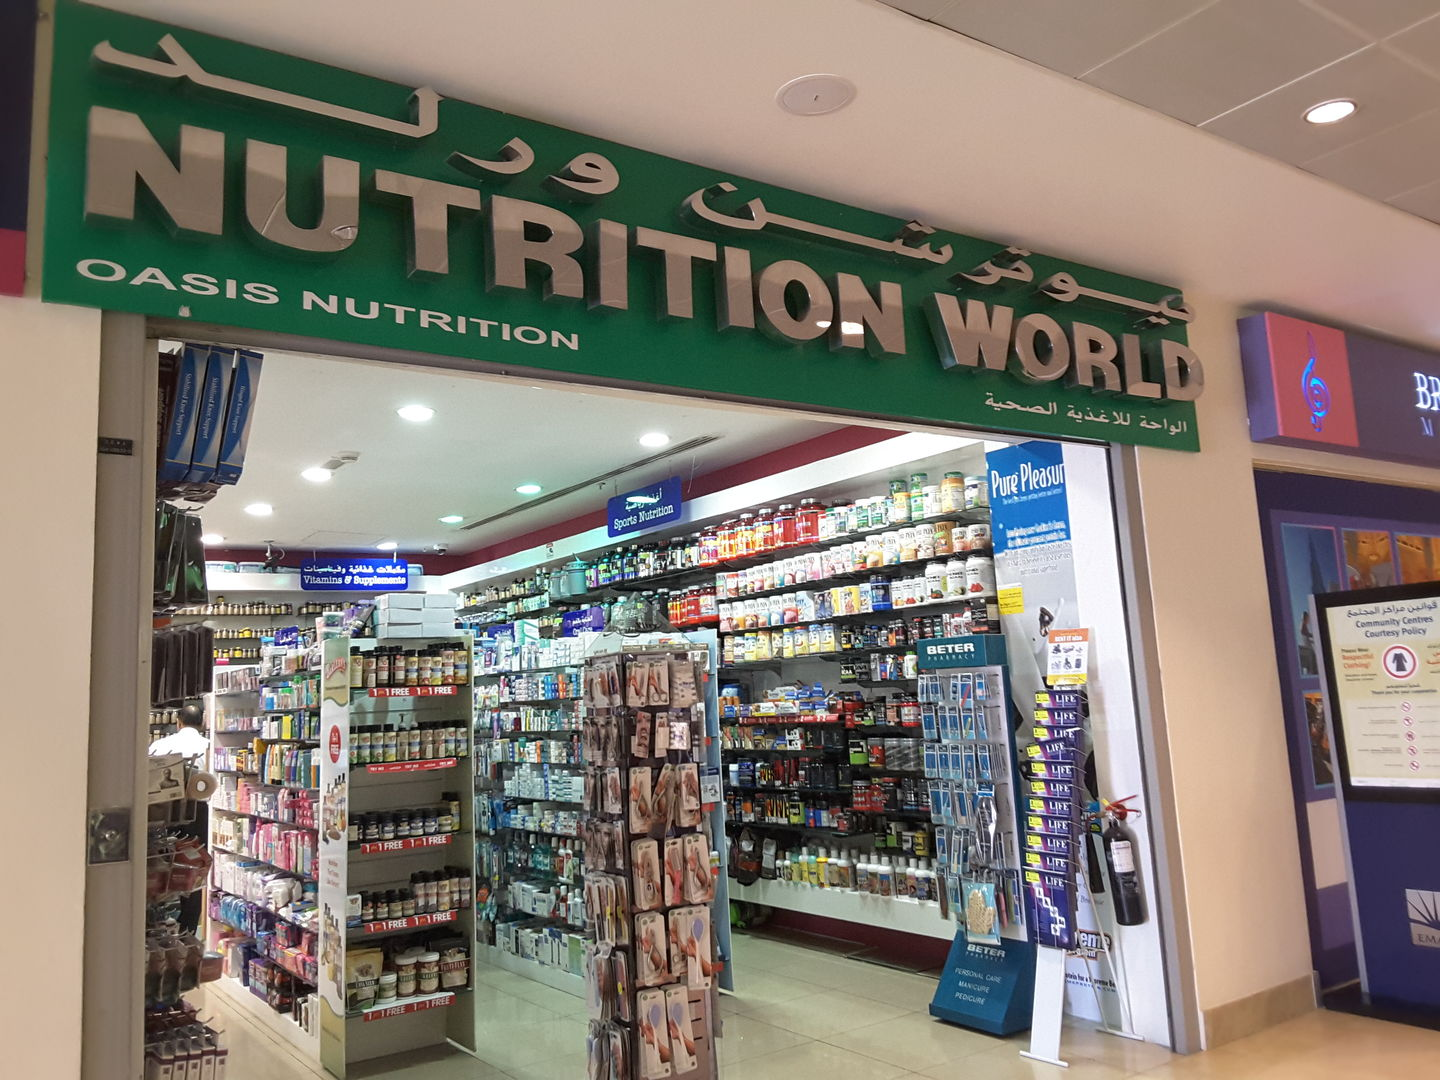 HiDubai-business-nutrition-world-oasis-nutrition-beauty-wellness-health-pharmacy-meadows-al-thanyah-4-dubai-2